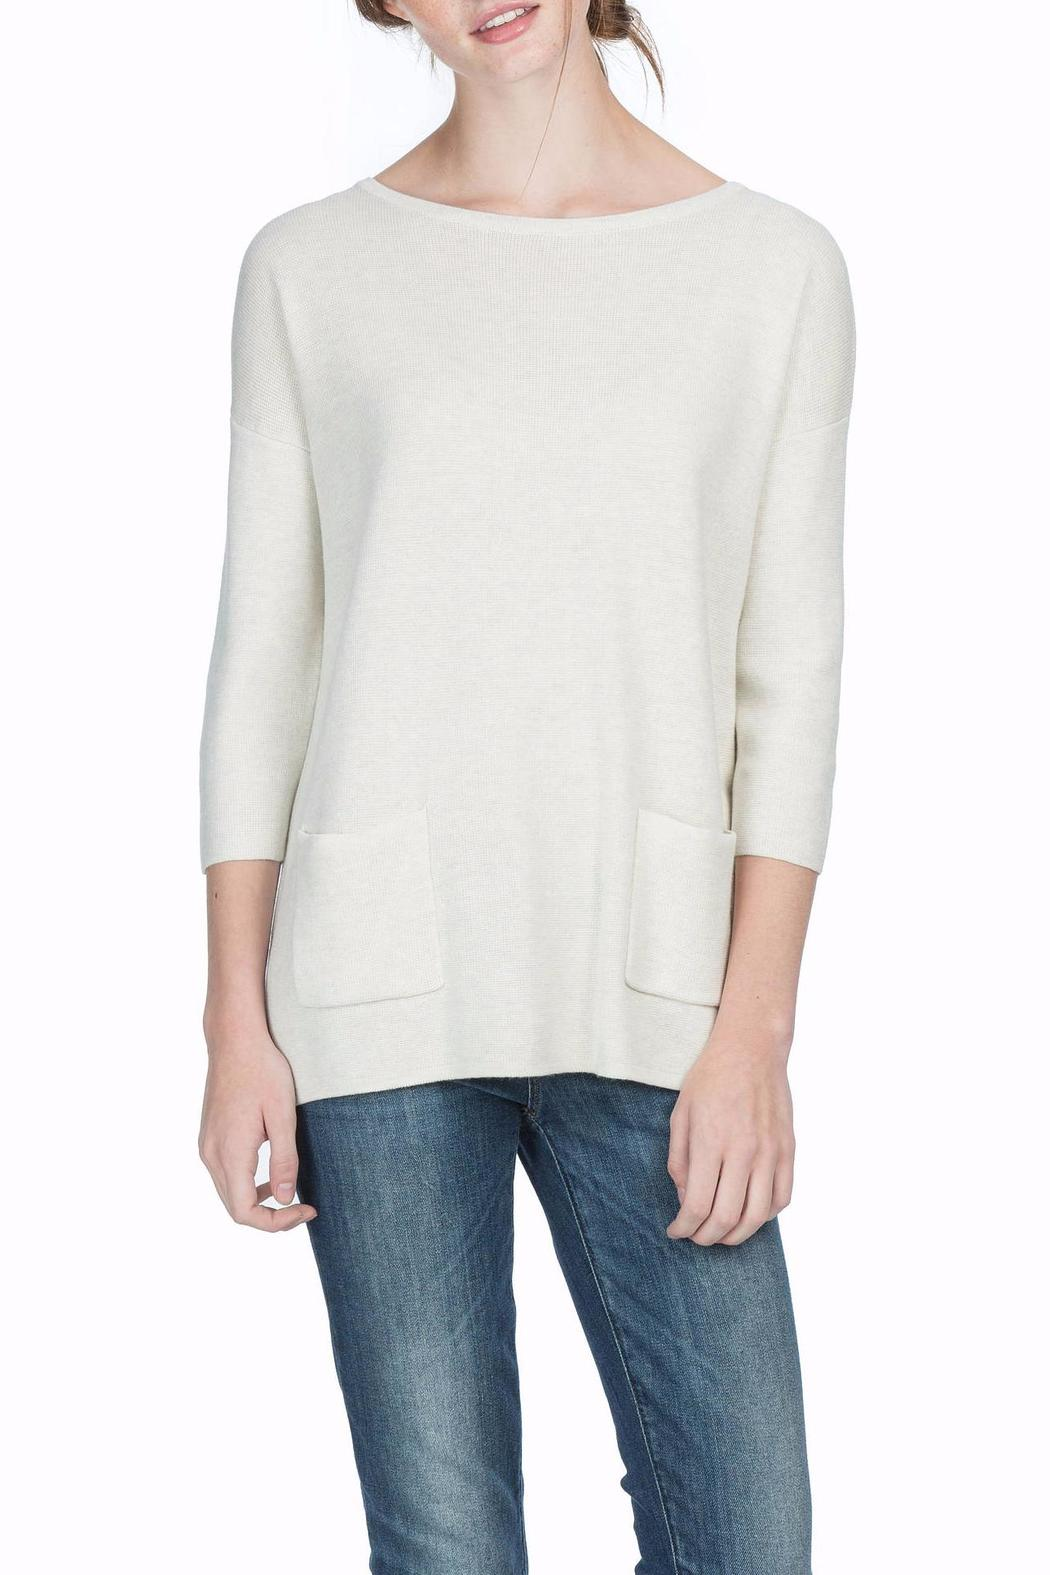 Lilla P 3/4 Sleeve Boat Neck - Front Cropped Image